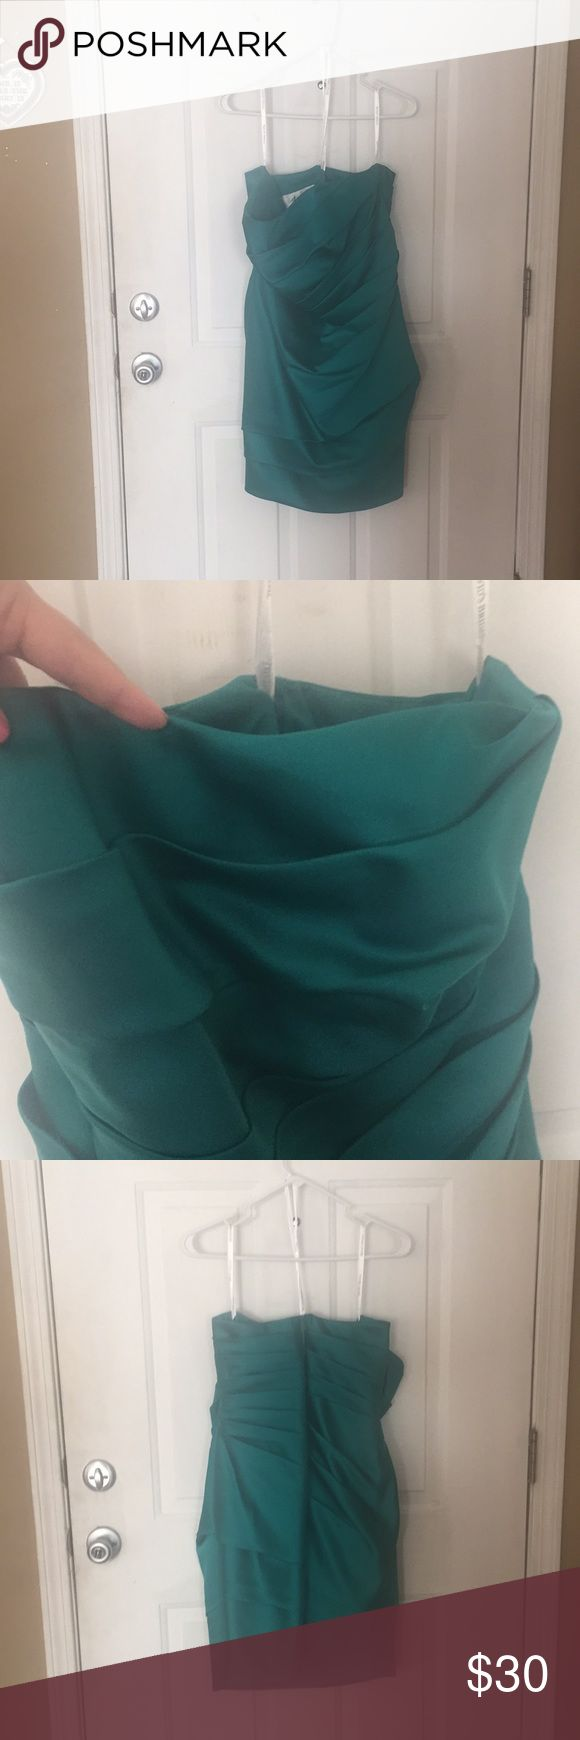 Tube top dress Used once Davids Bridal dress. Sweetheart neck line with zipper back. Still in great shape been in my closet for awhile now. The color is in the emerald green family. I love summer weddings. David's Bridal Dresses Strapless